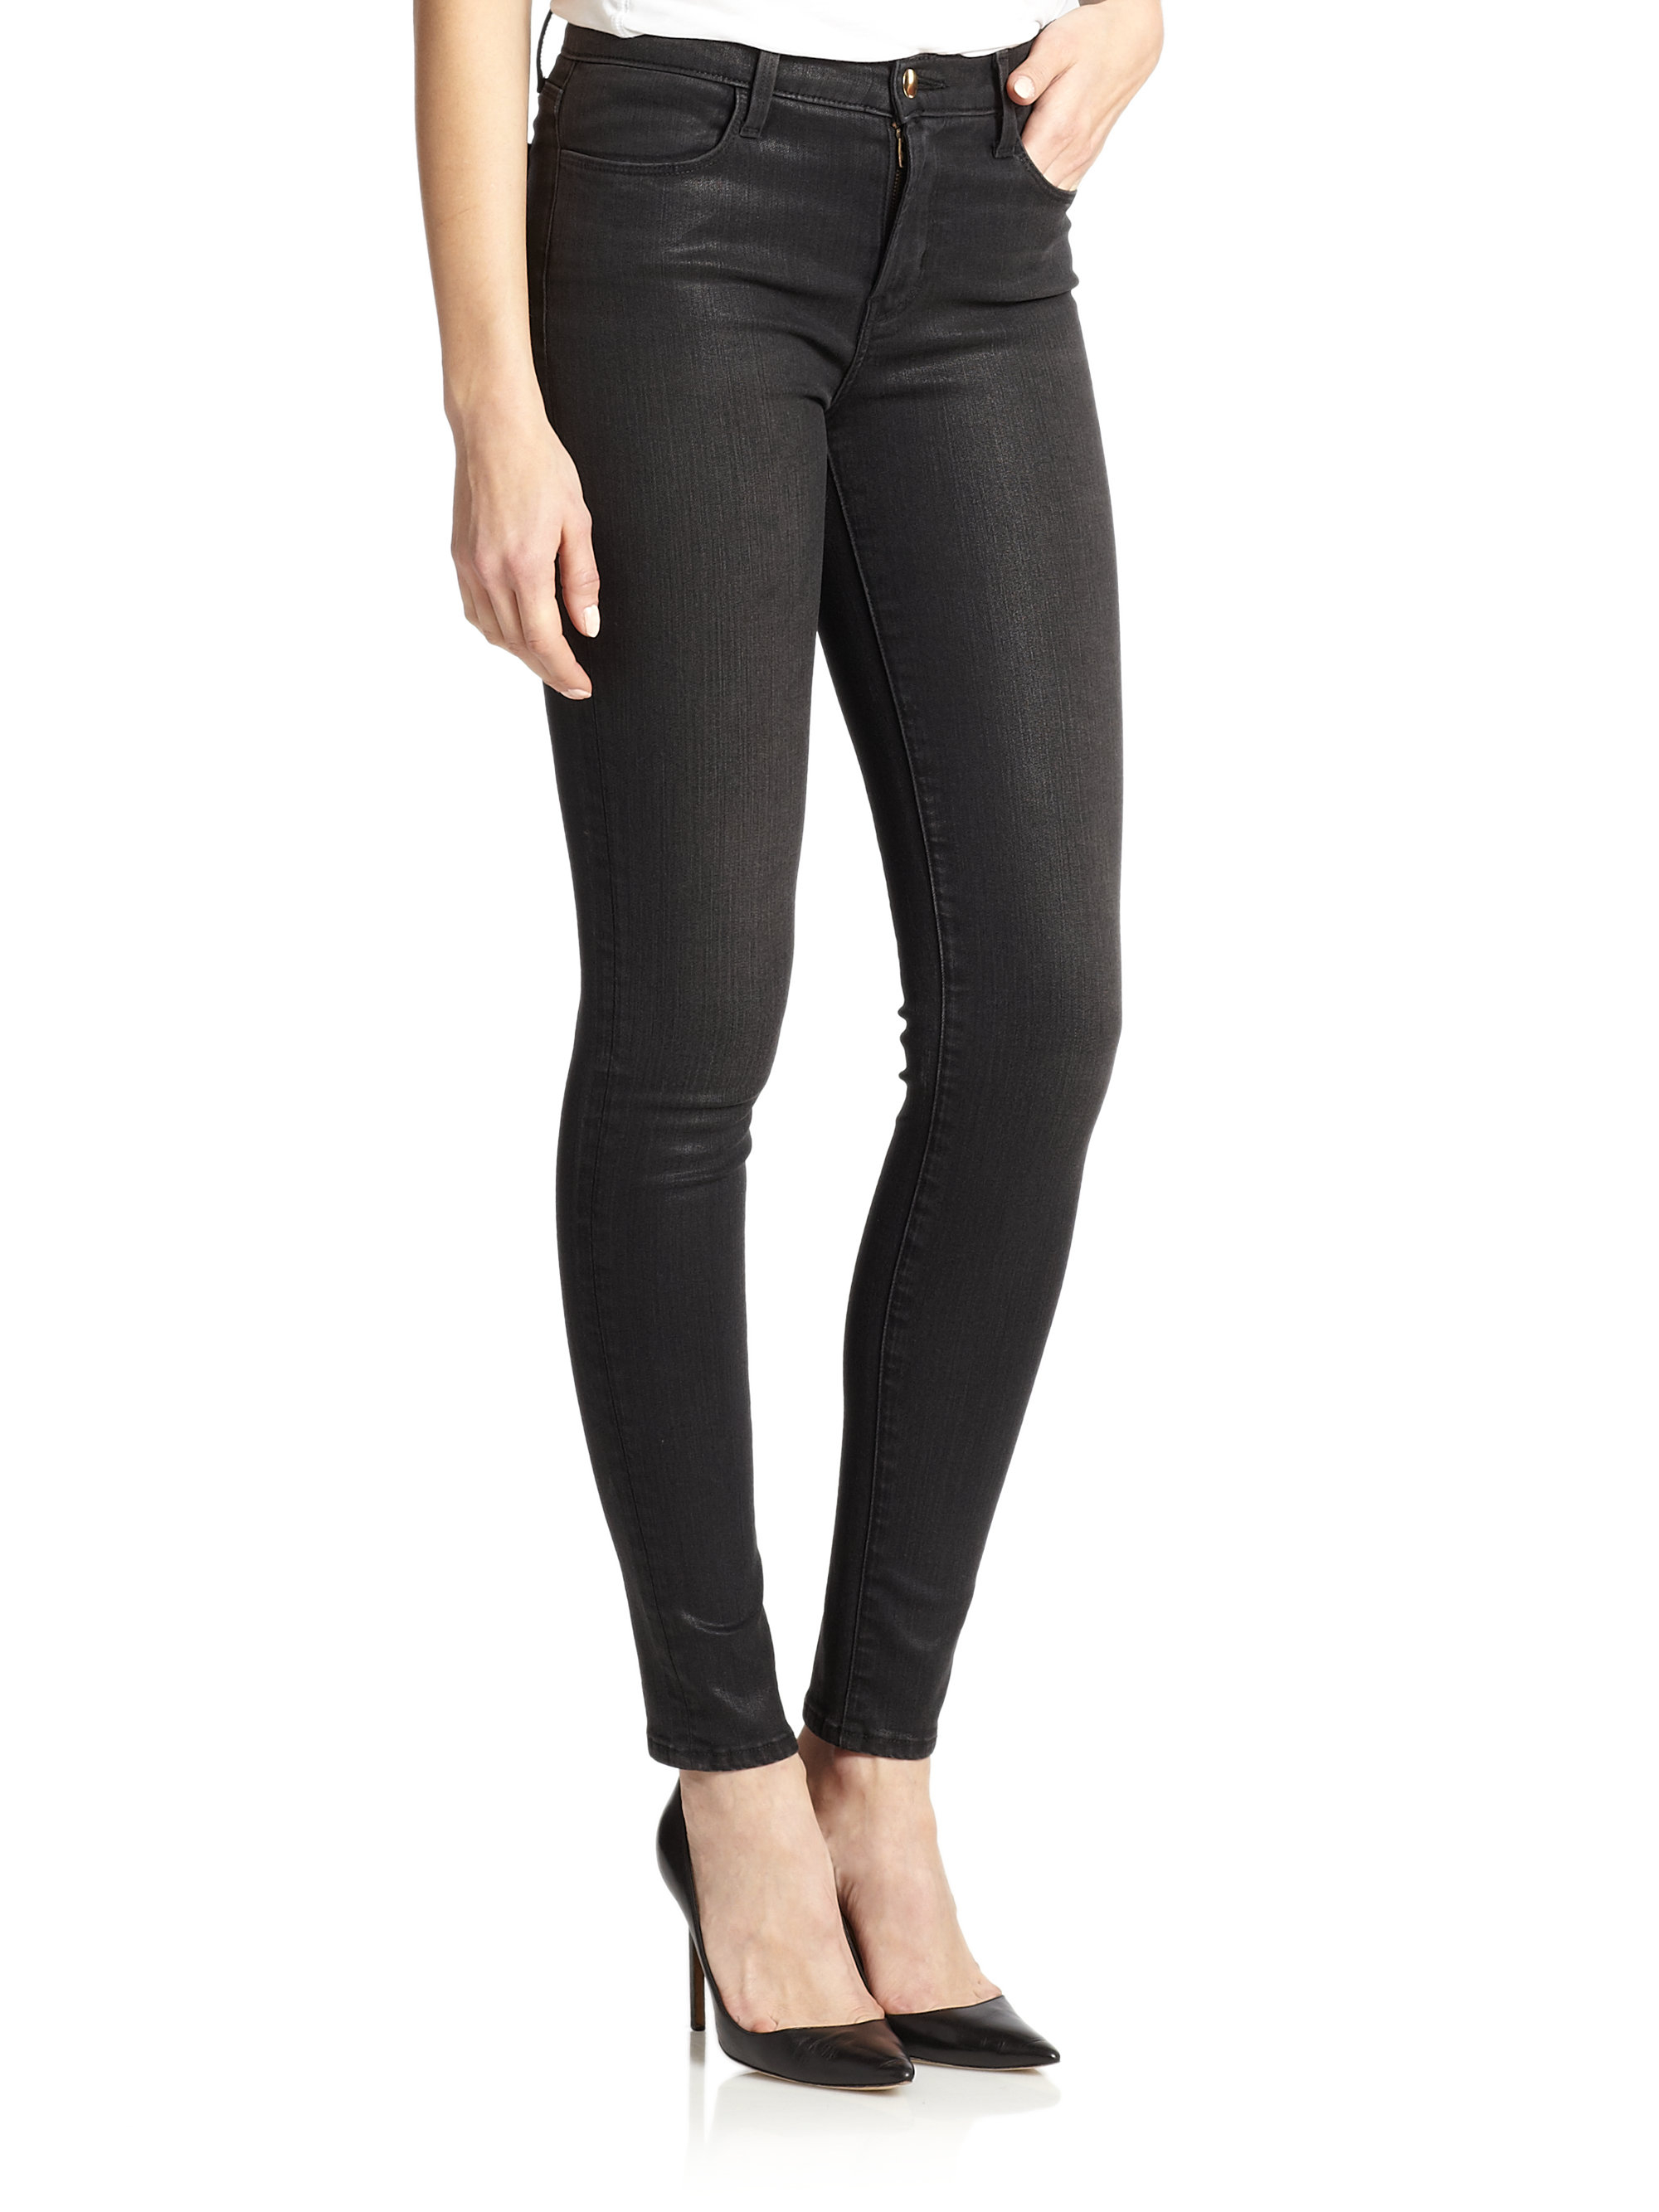 d39459d9dcc5 Lyst - J Brand Maria Photo-Ready Coated High-Rise Skinny Jeans in Blue